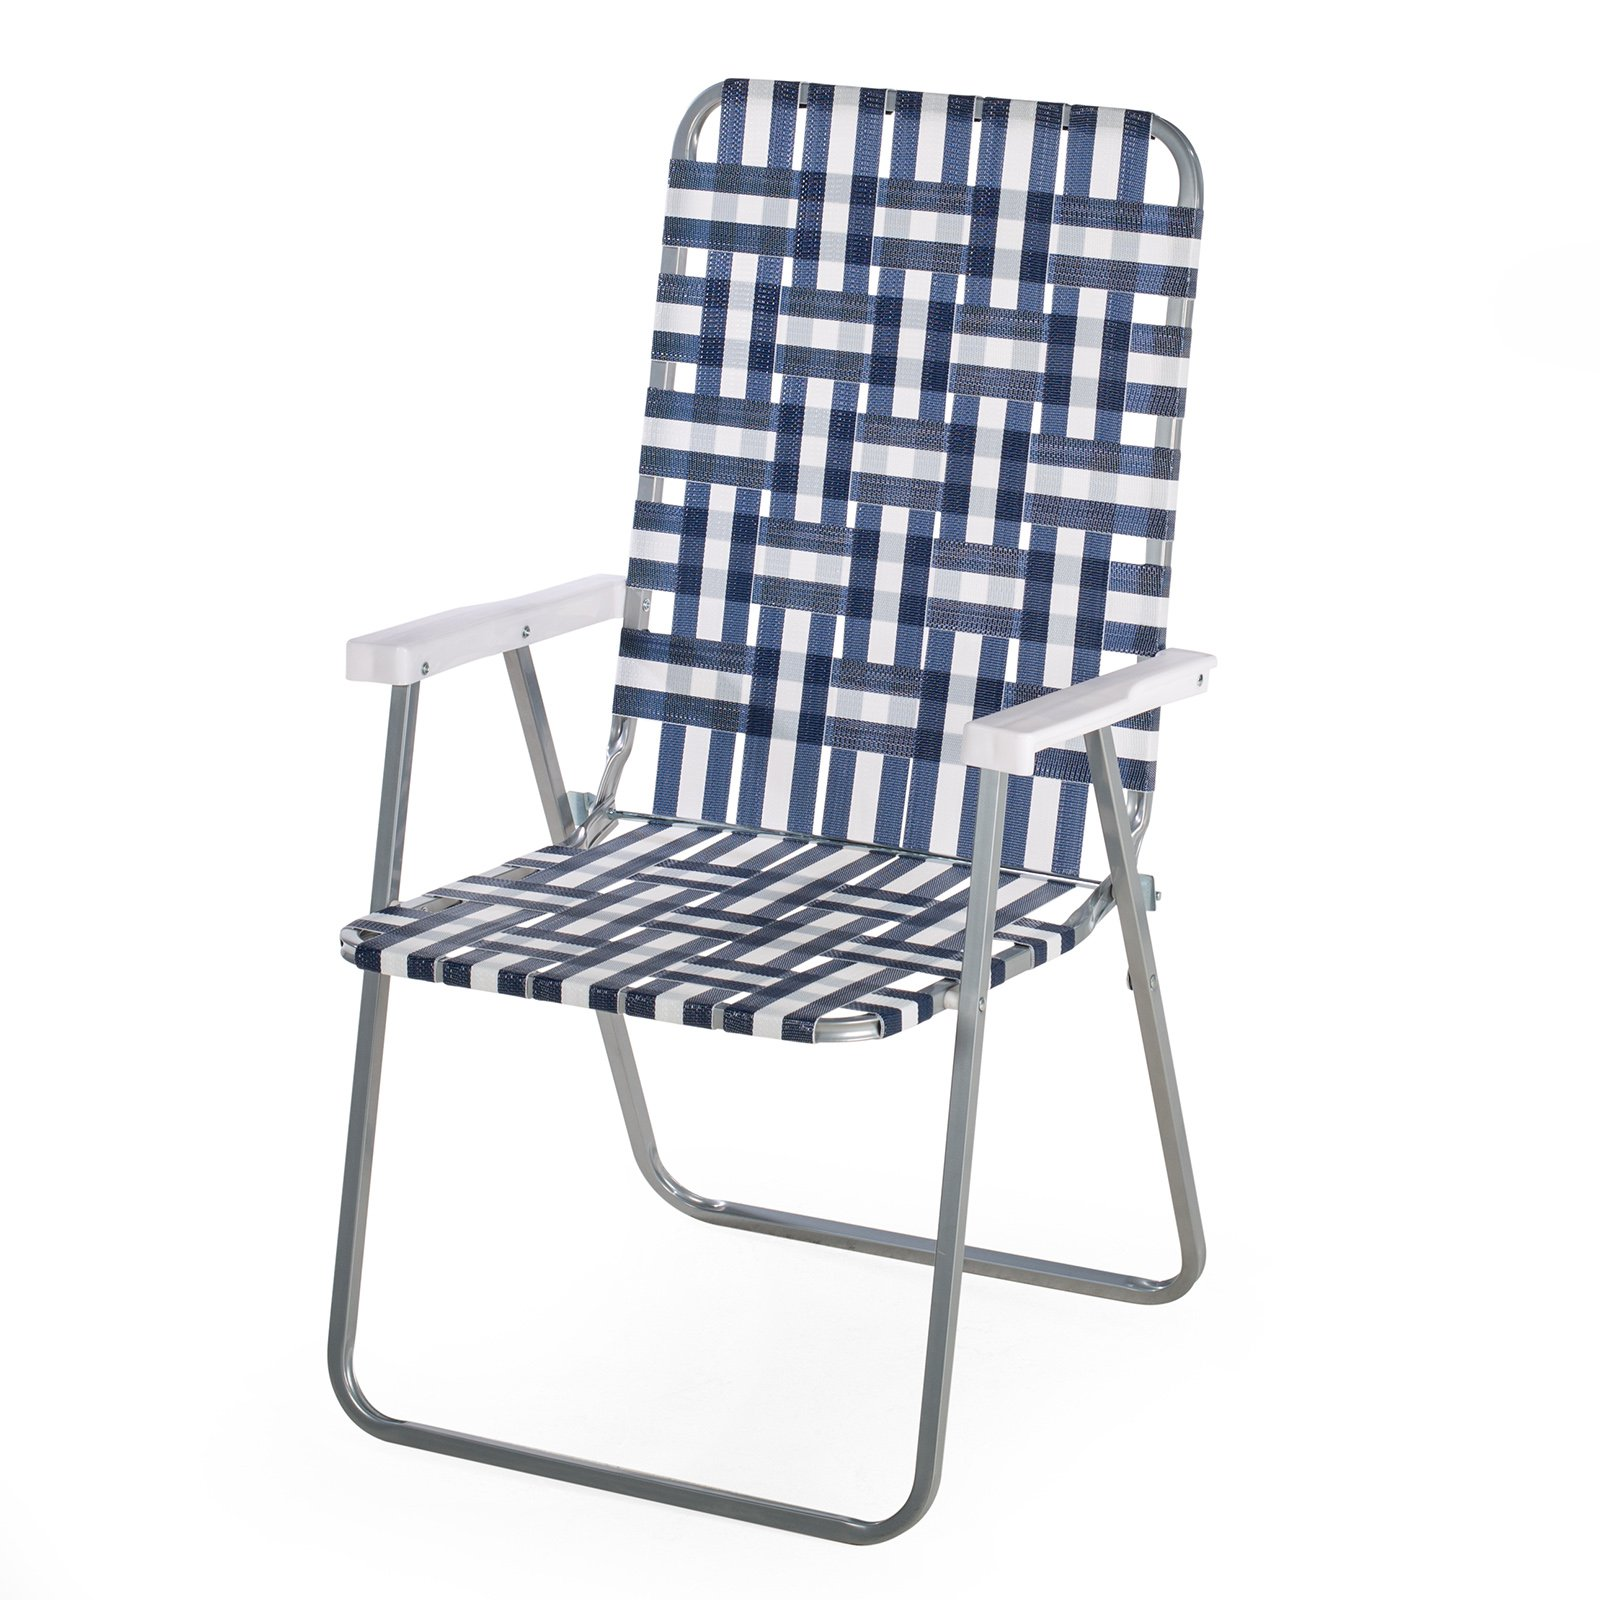 Woven Lawn Chair Coral Coast Classic Woven Folding Lawn Chair